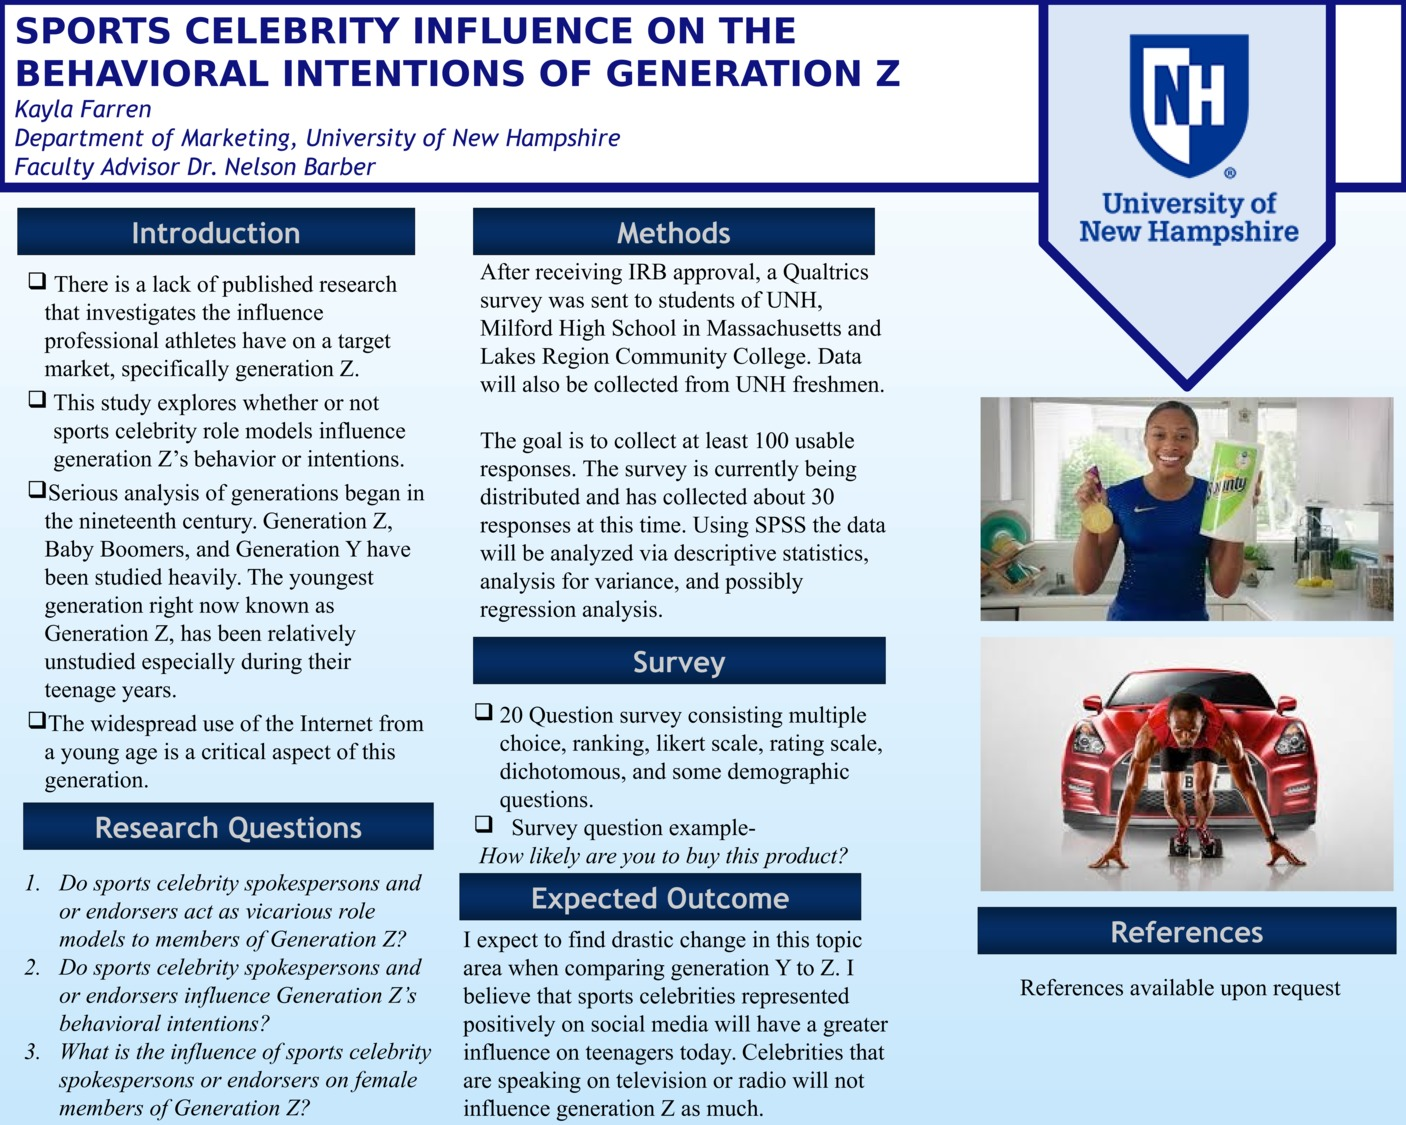 Sports Celebrity Influence On The Behavioral Intentions Of Generation Z by kmf2001